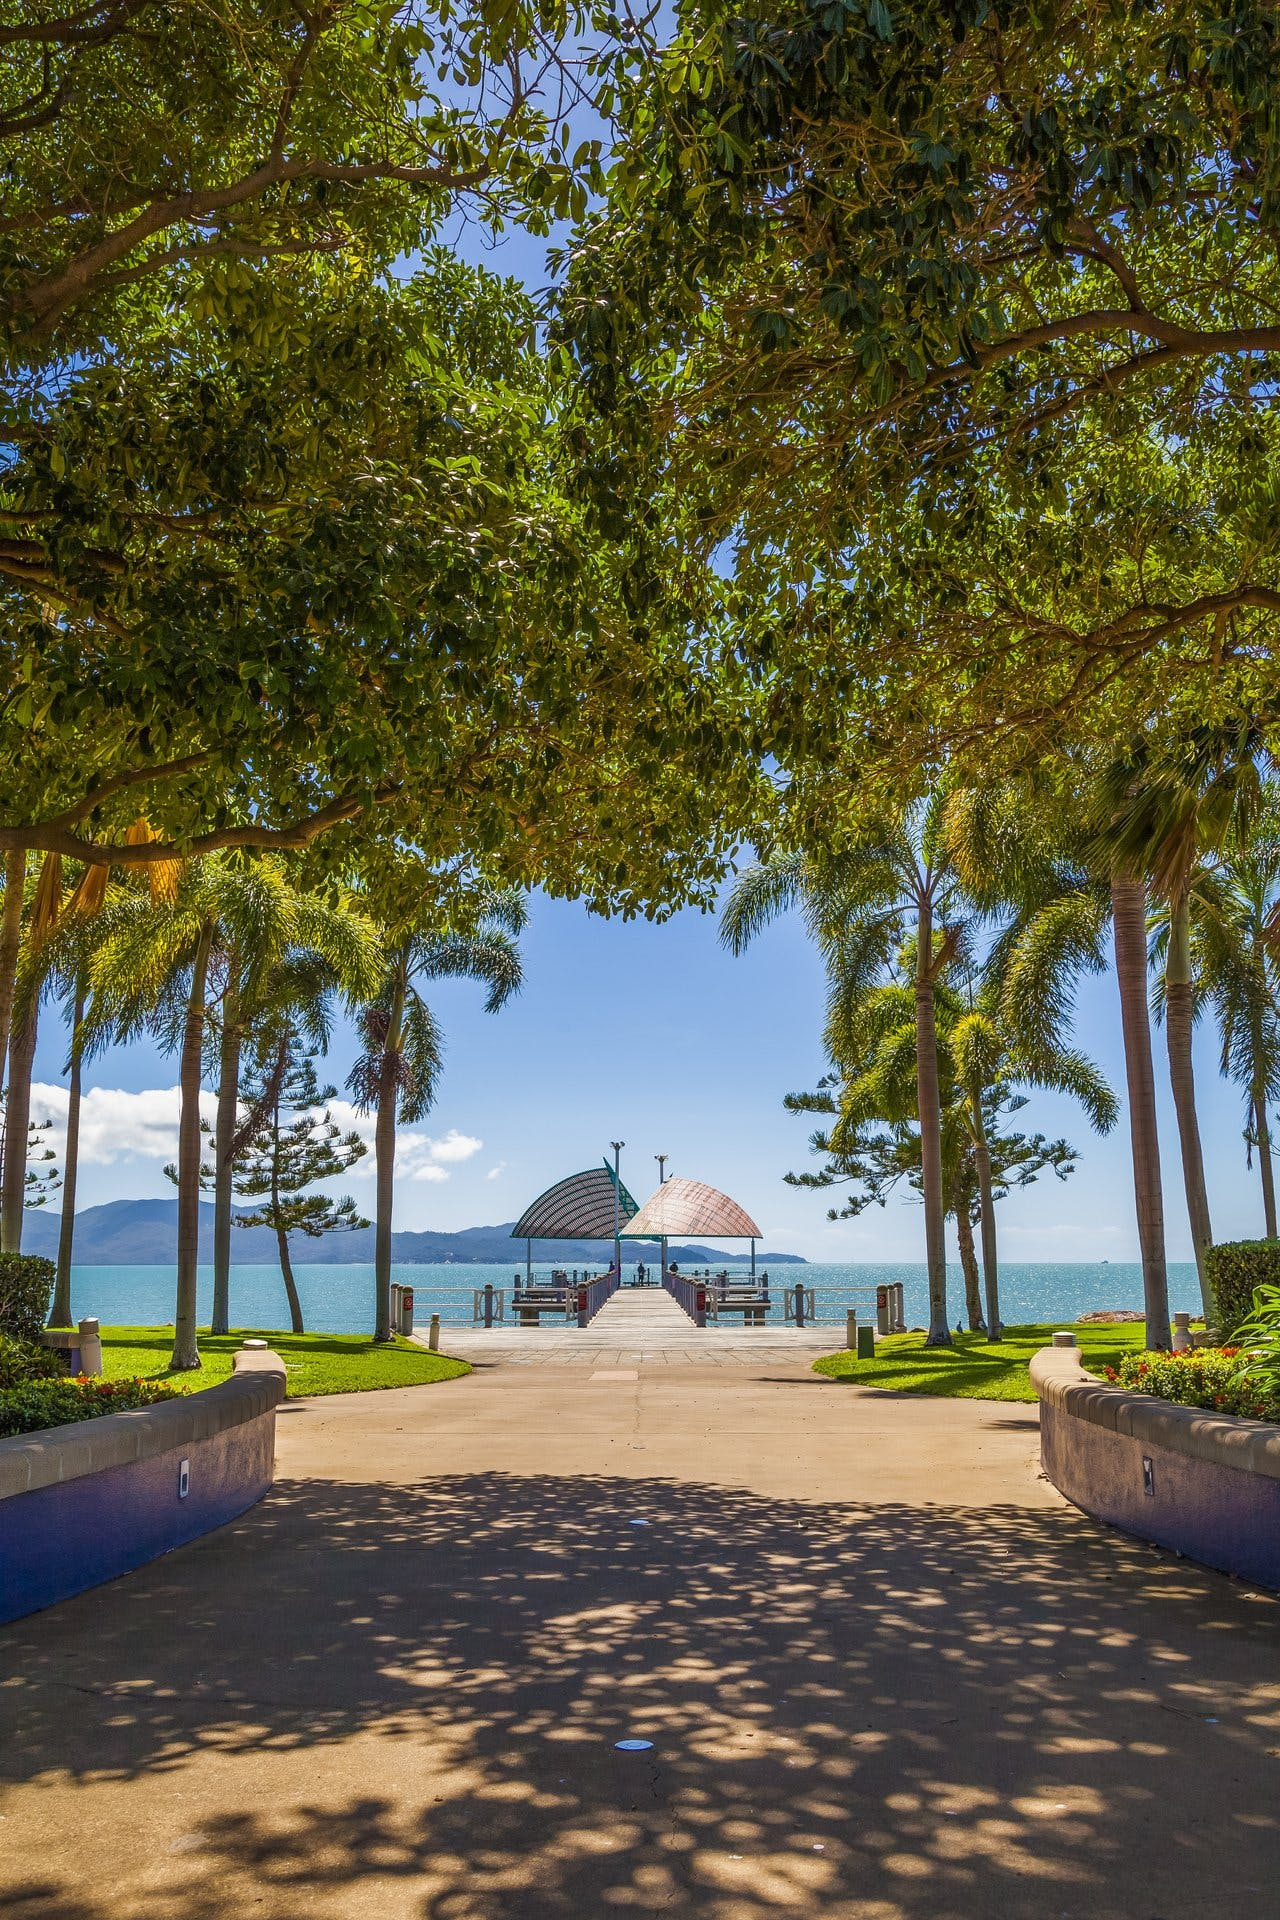 ITU awards the 2021 Multisport World Championships to Townsville